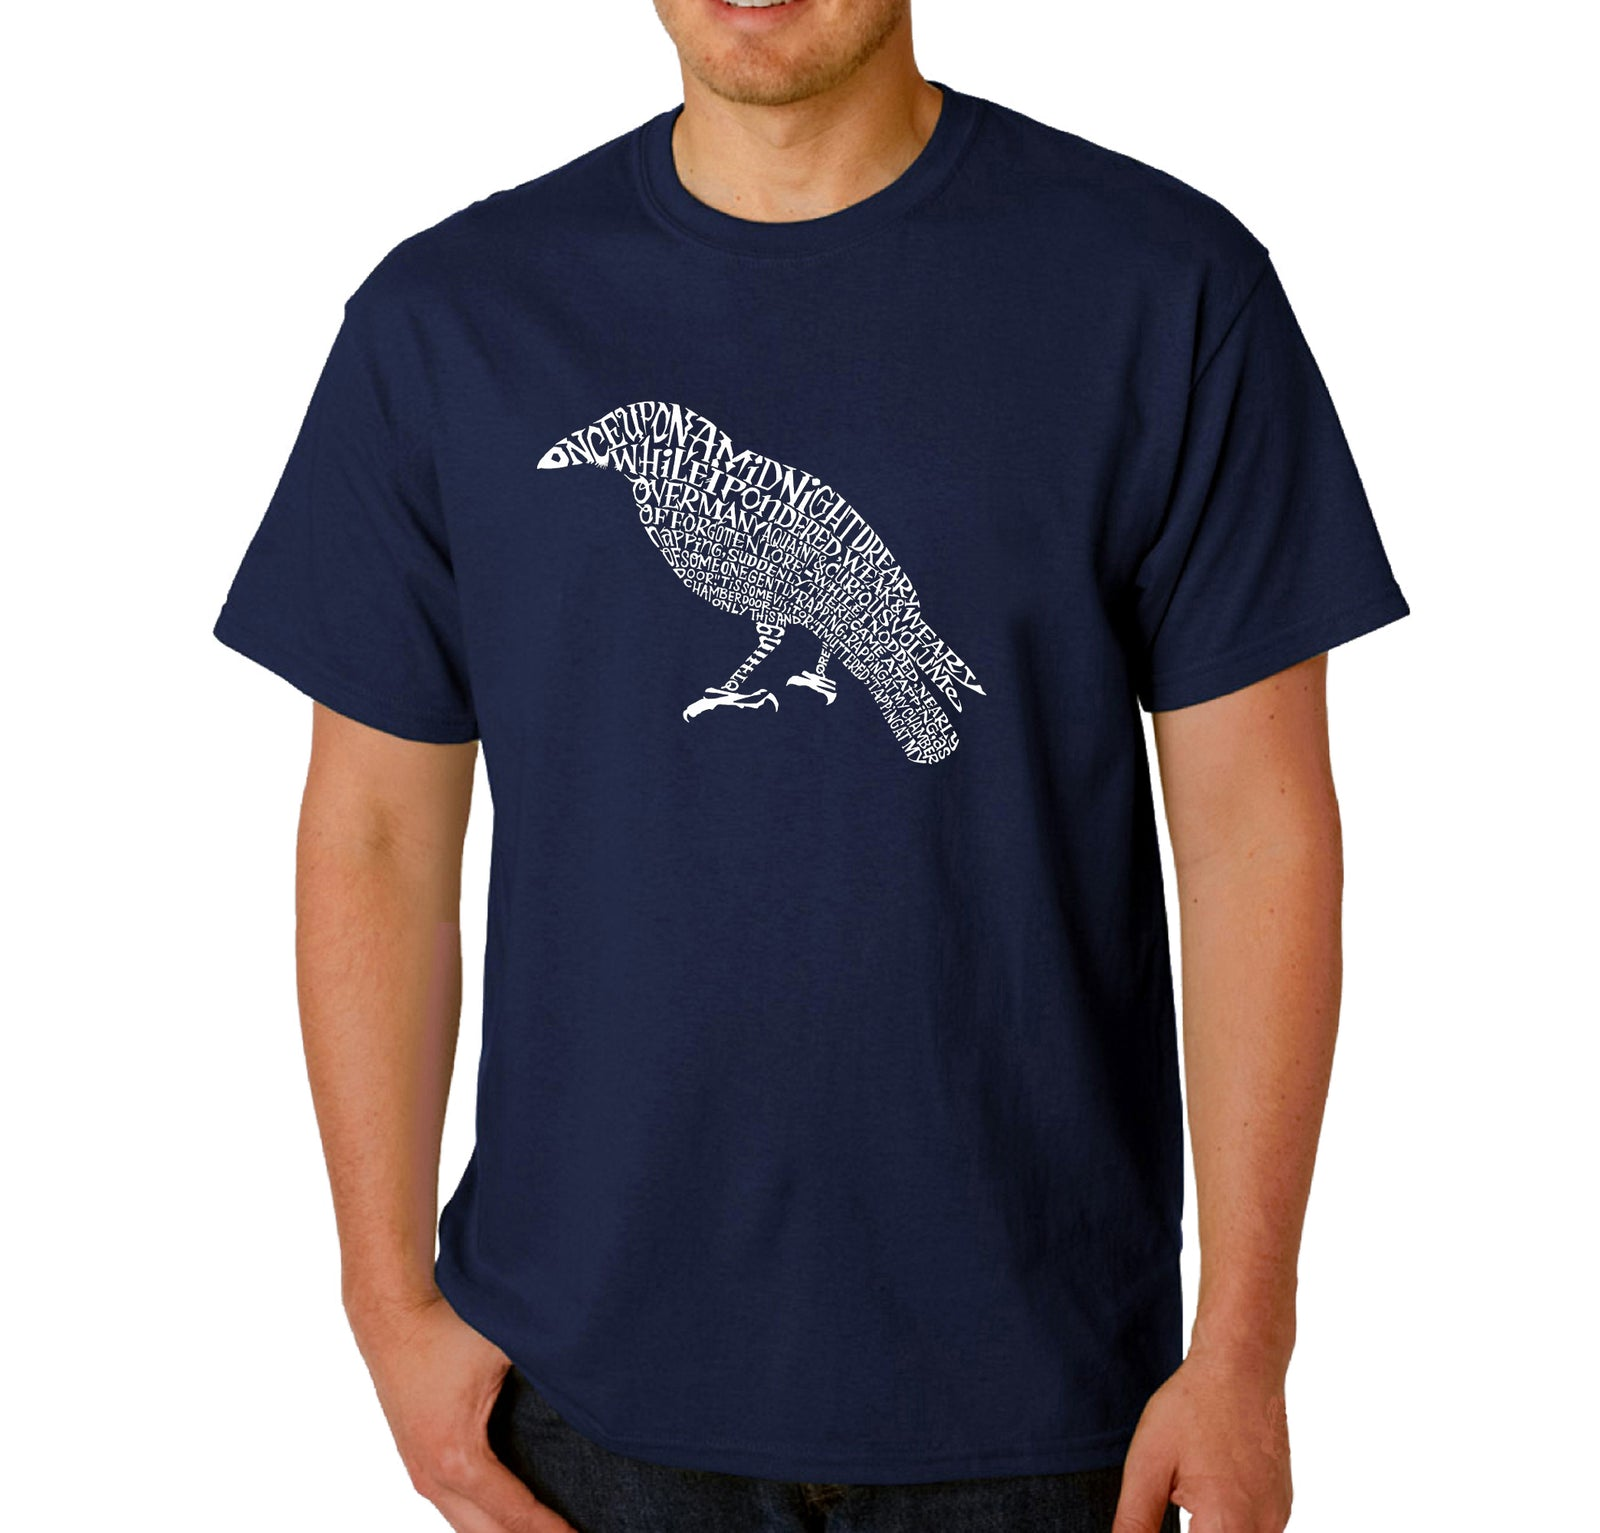 Men's Word Art T-shirt - Edgar Allen Poe's The Raven